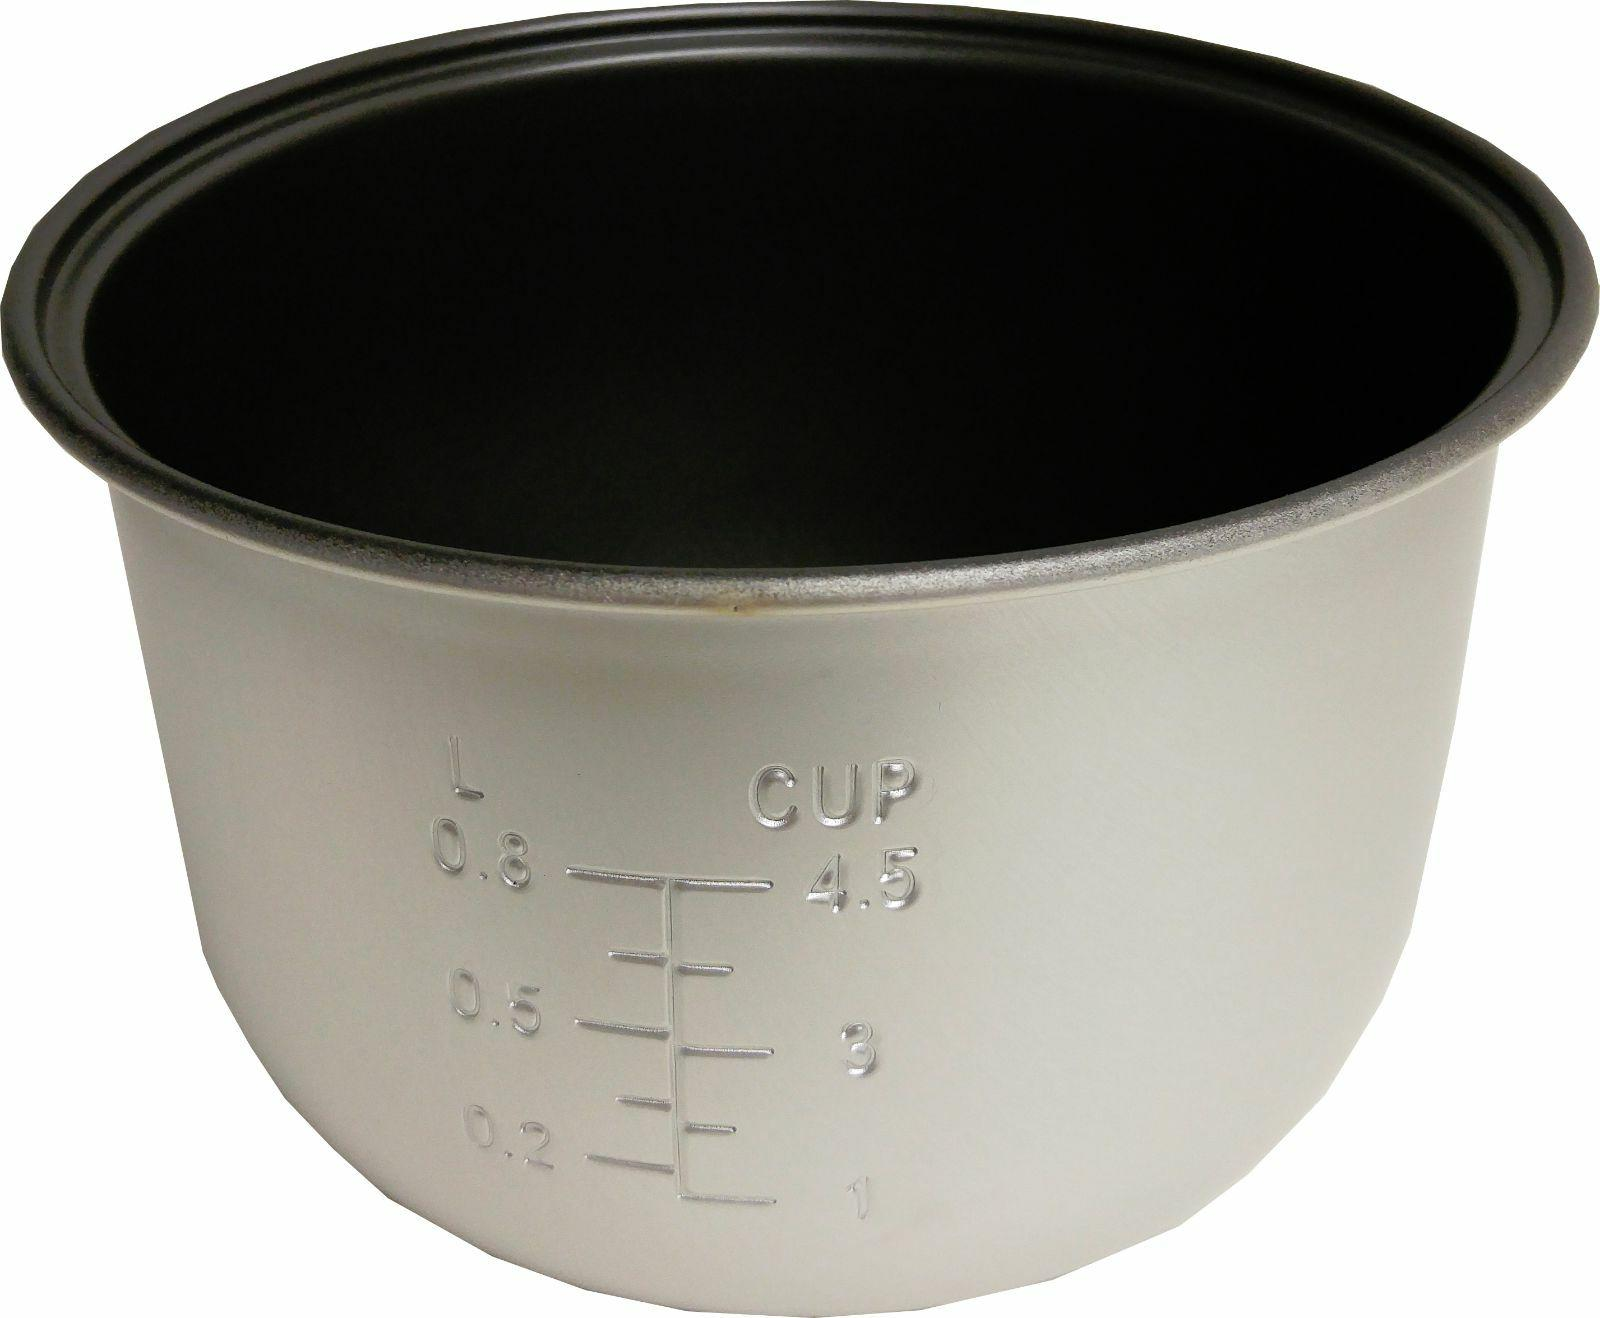 """Tayama Cooking Pot for 4.5 Cup Rice Cooker Height 4 3/8"""" Dia"""